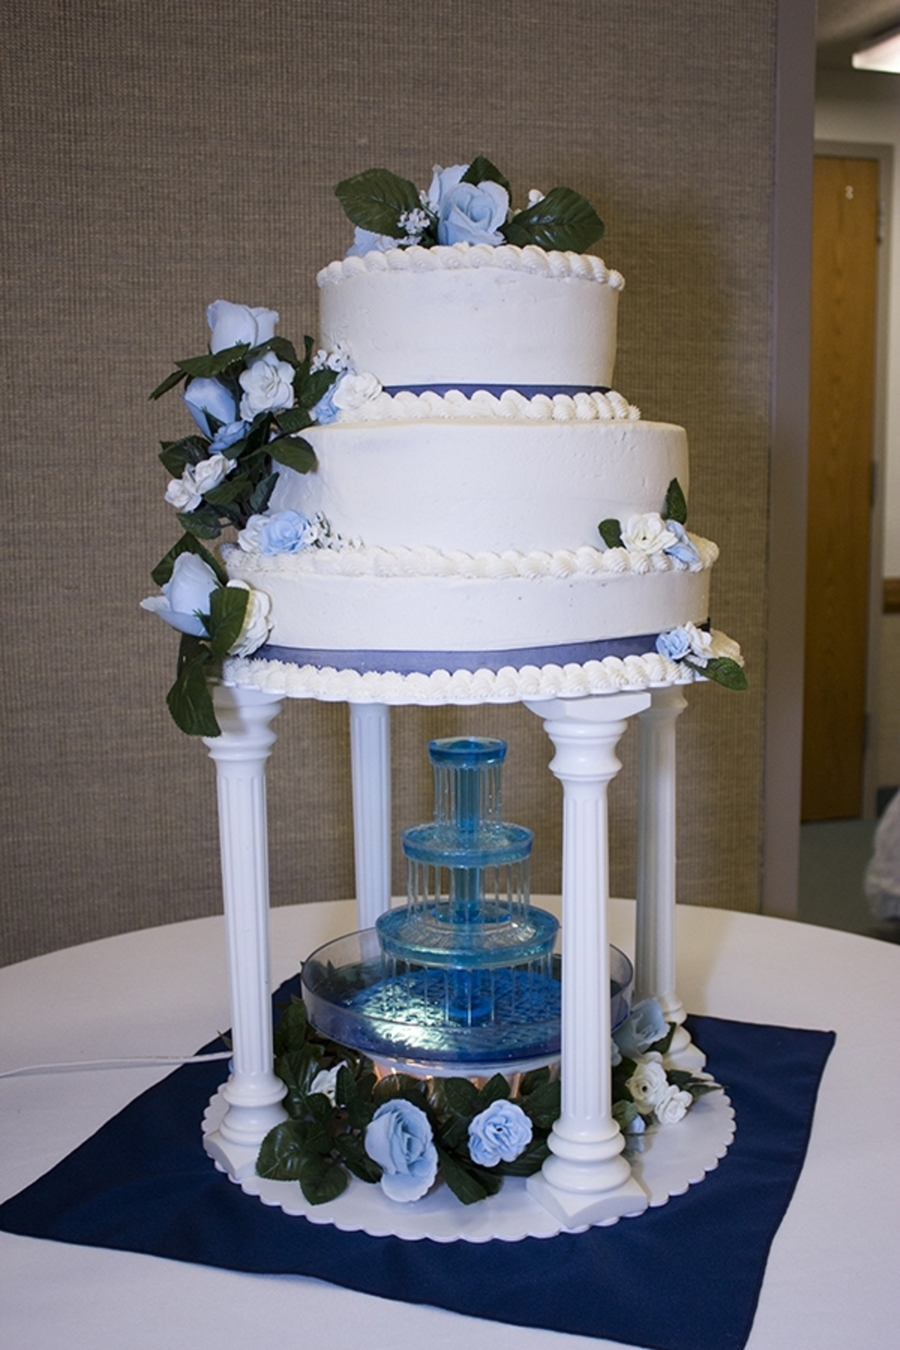 3 Tierd Round Wedding Cake on Cake Central